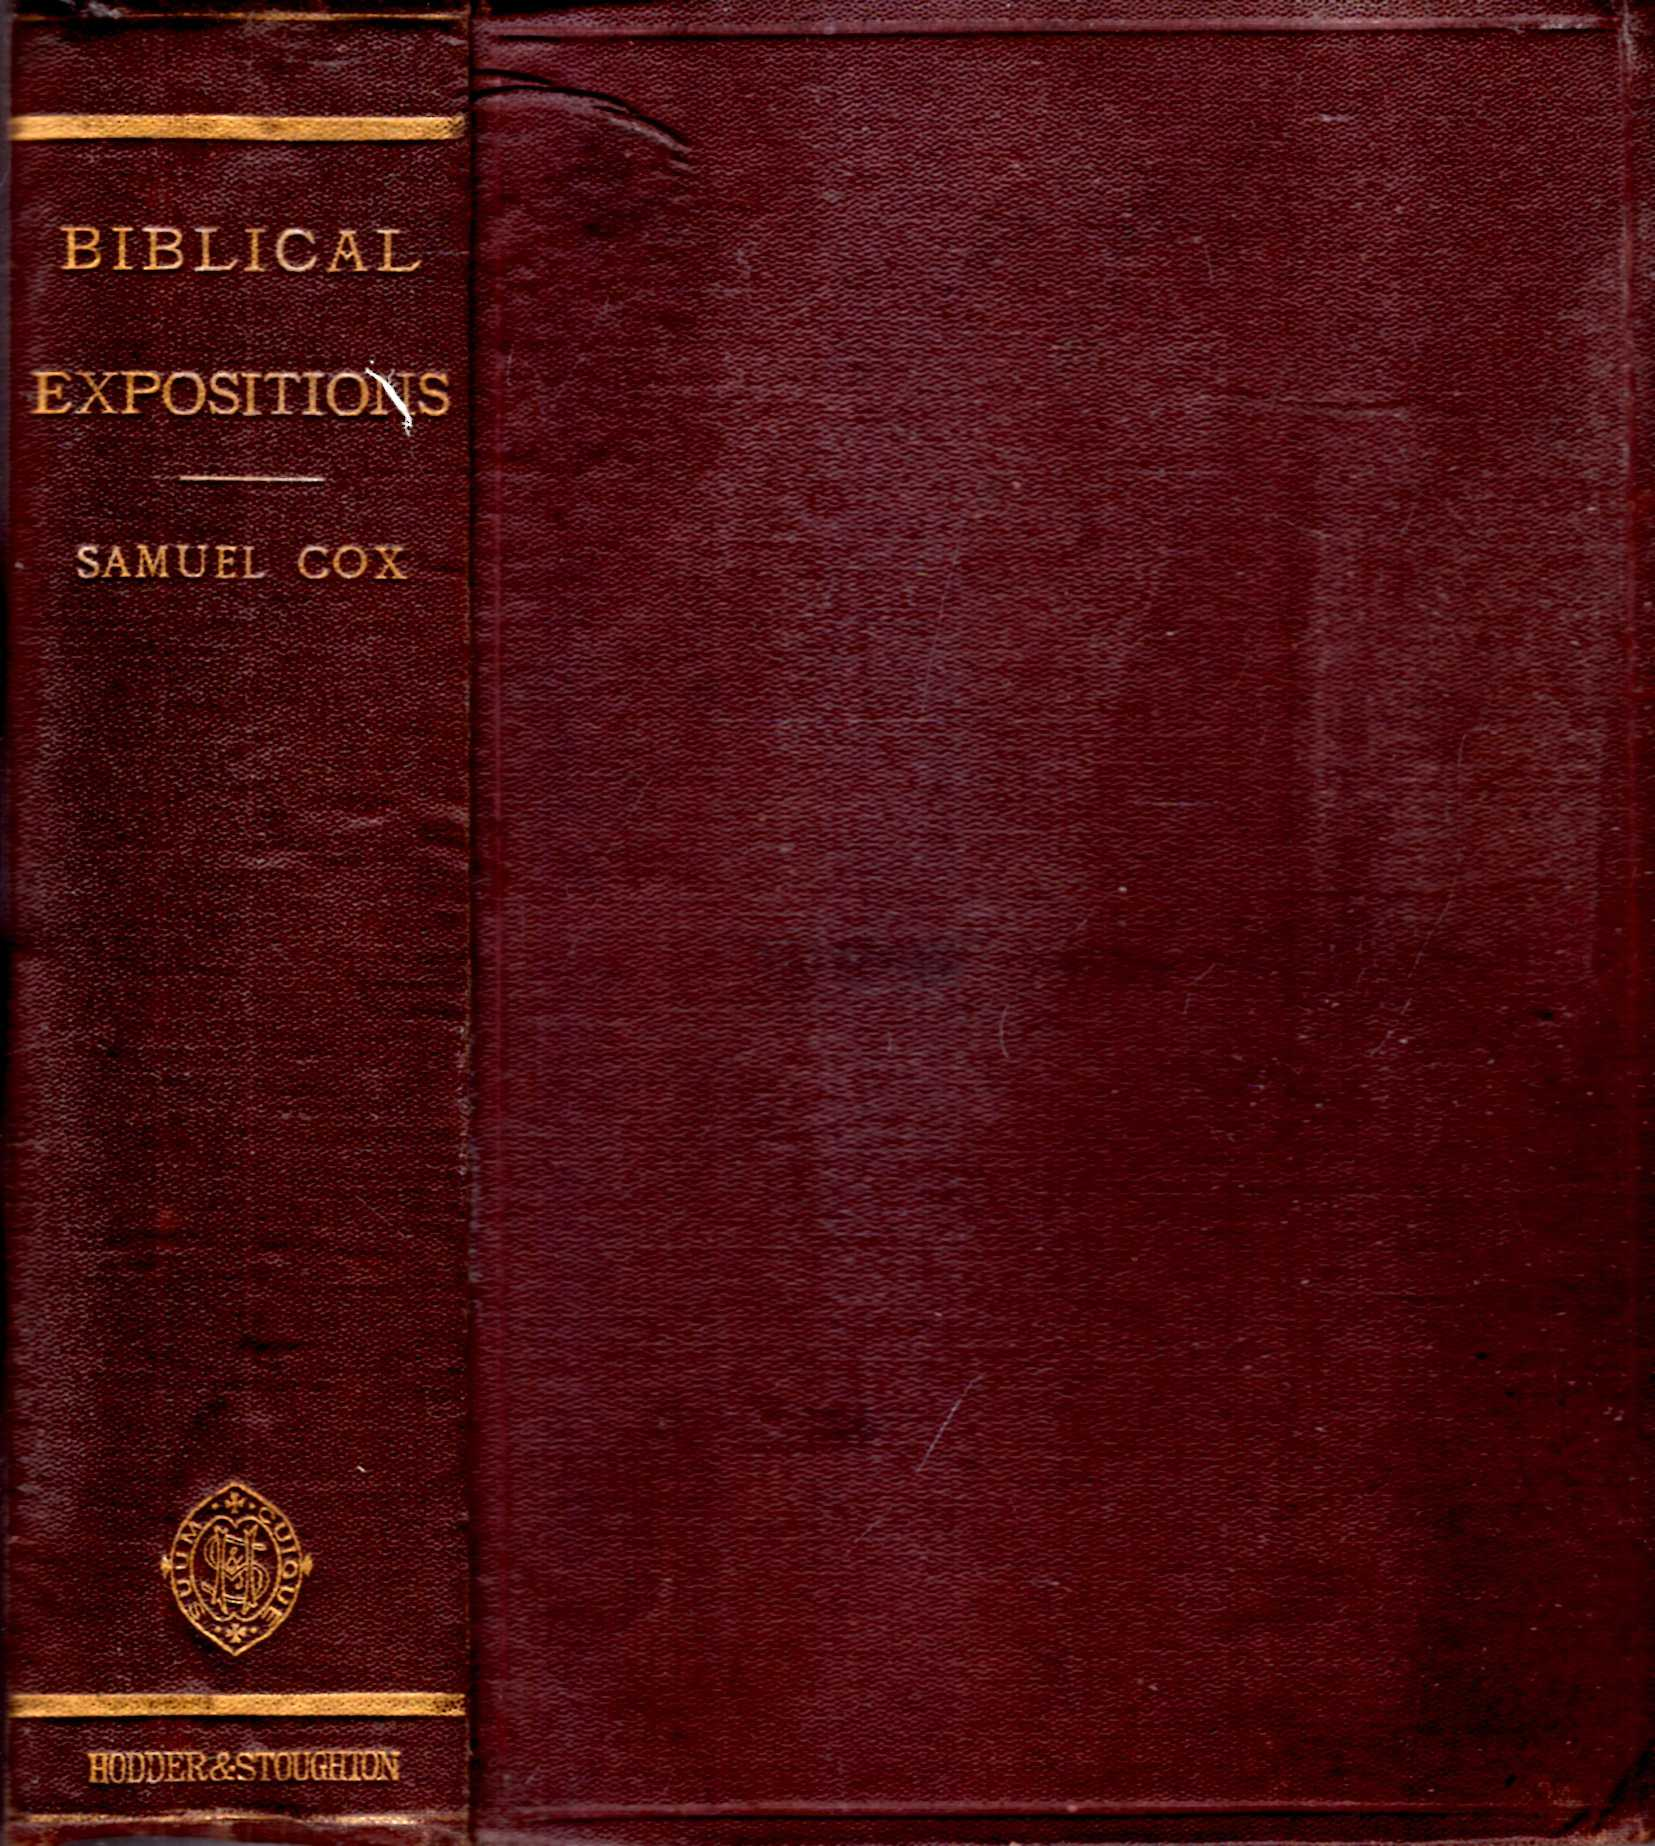 Image for Biblical Expositions or Brief Essays on Obscure and Misread Scriptures